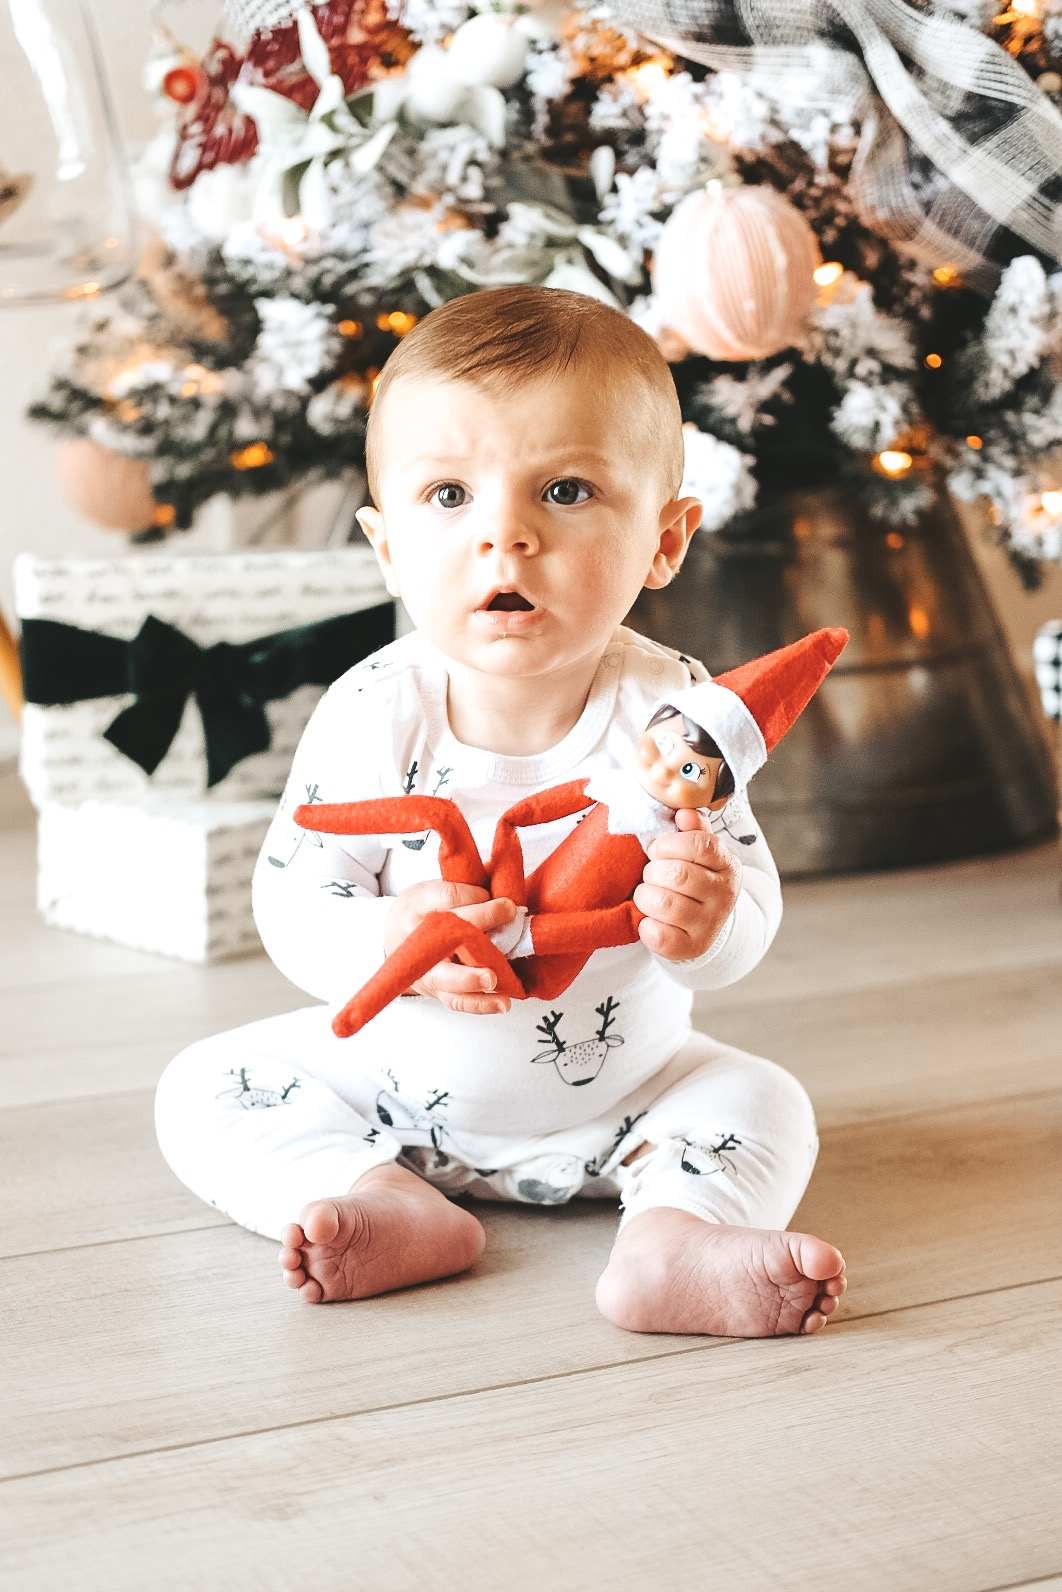 Gift guide for babies under age 1.